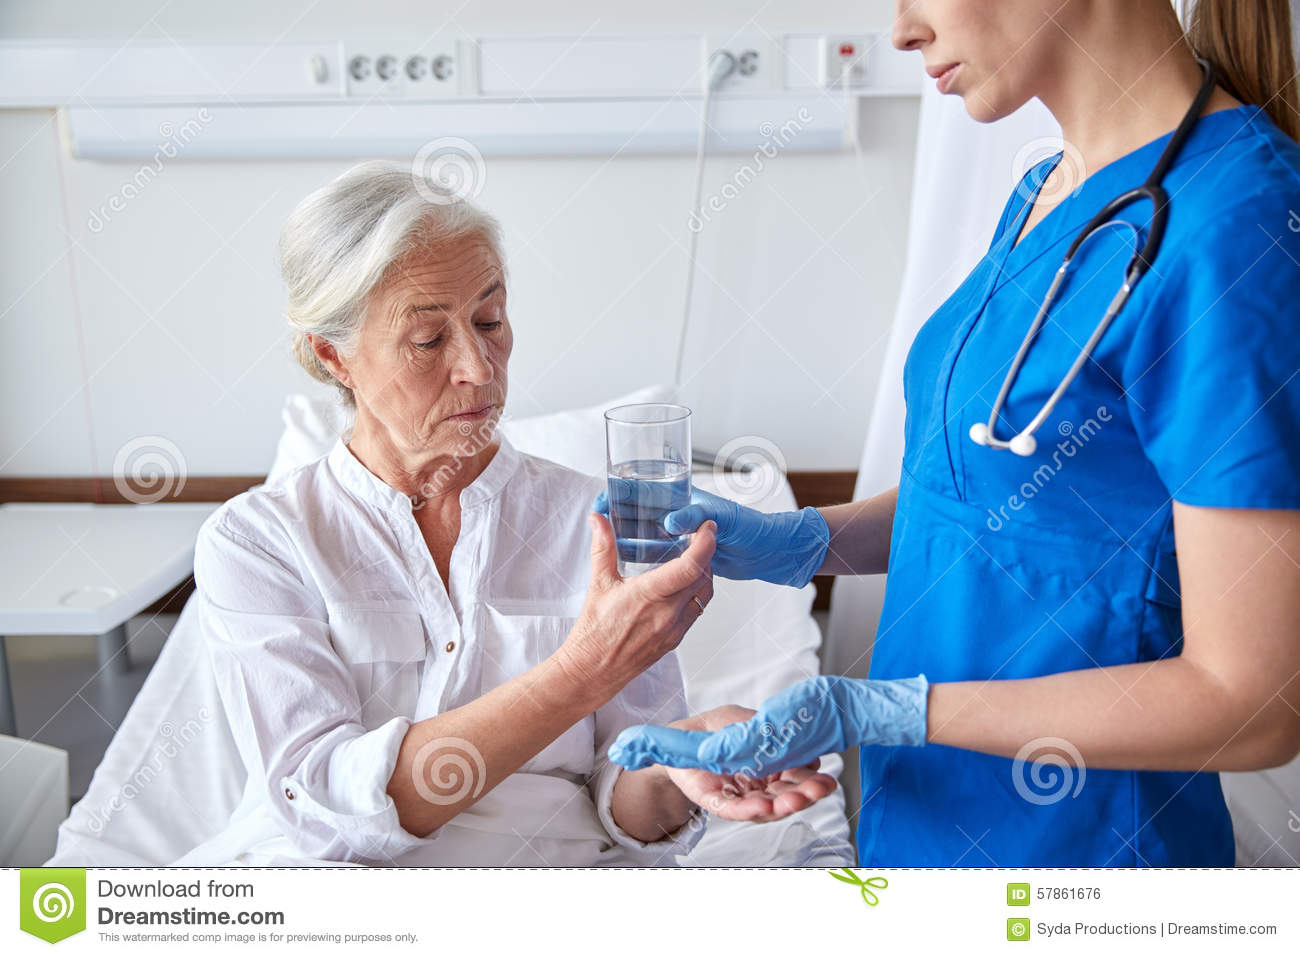 health care and people Introduction a need for the study primary barriers to health and health care for the general population are becoming well documented, and heightened national awareness of these obstacles has spurred numerous proposals for health care reform.